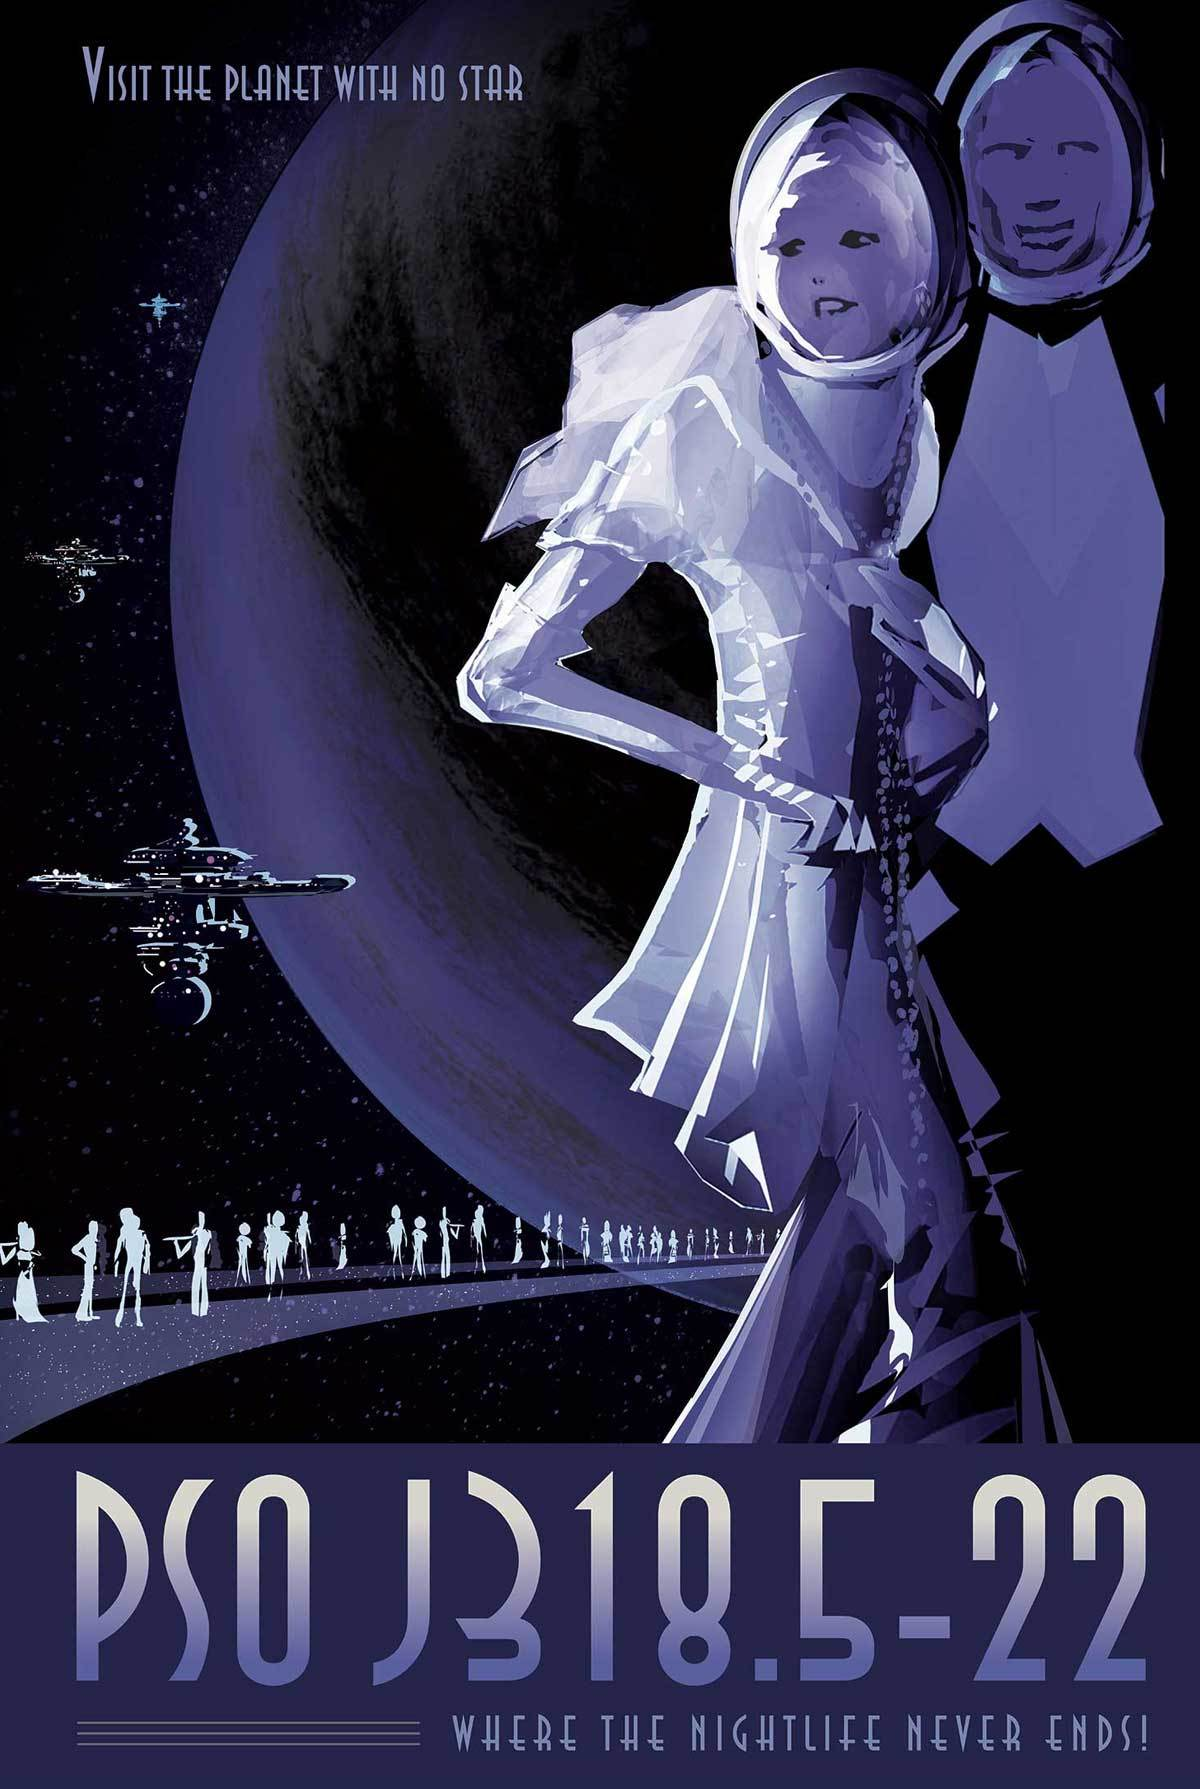 nightlife poster by NASA